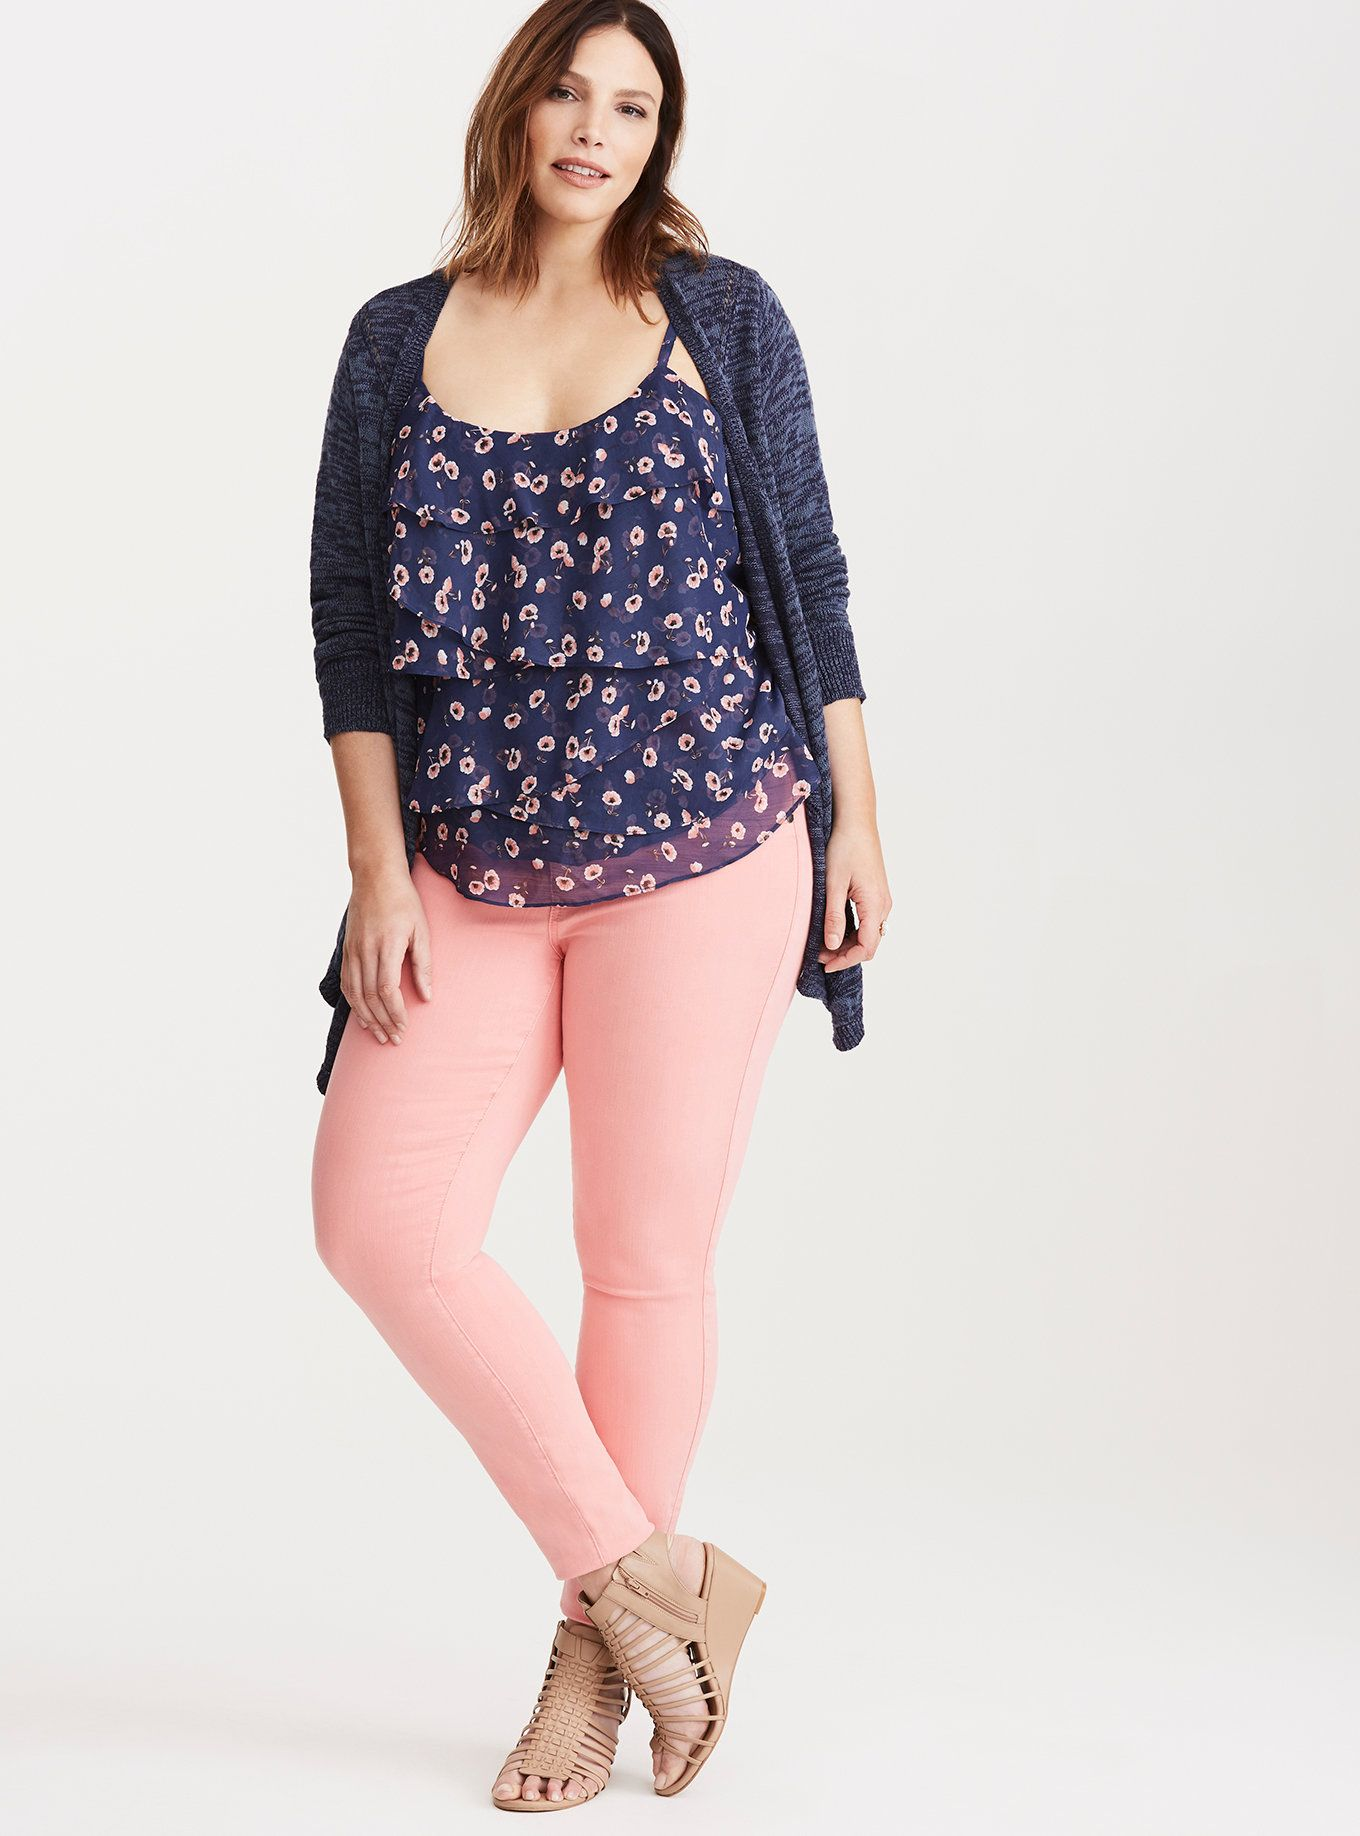 6f4cbf07ac3 Affordable Plus Size Clothing - Sale   Clearance